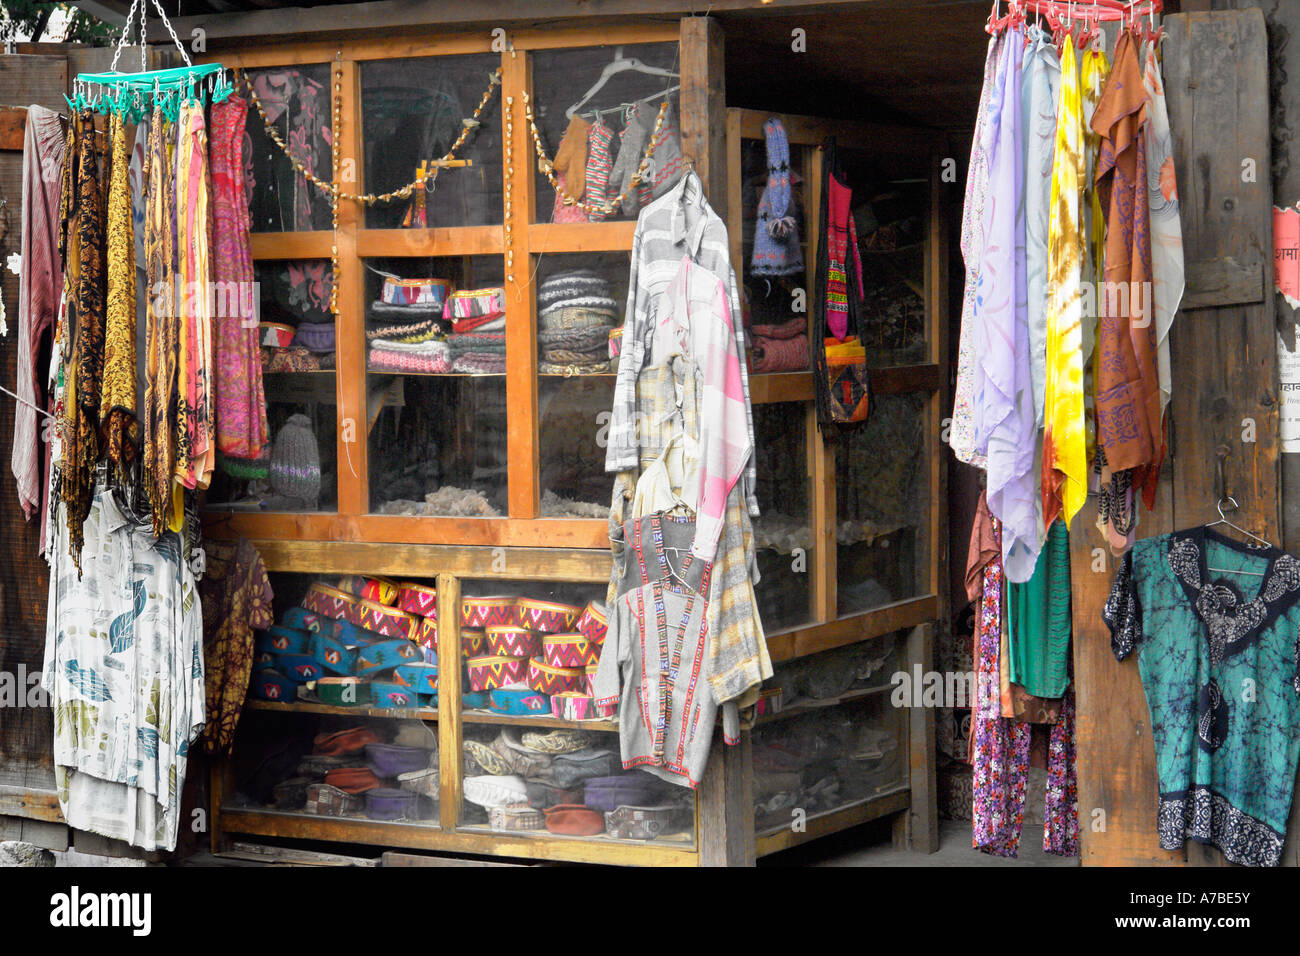 manali clothes store - Stock Image